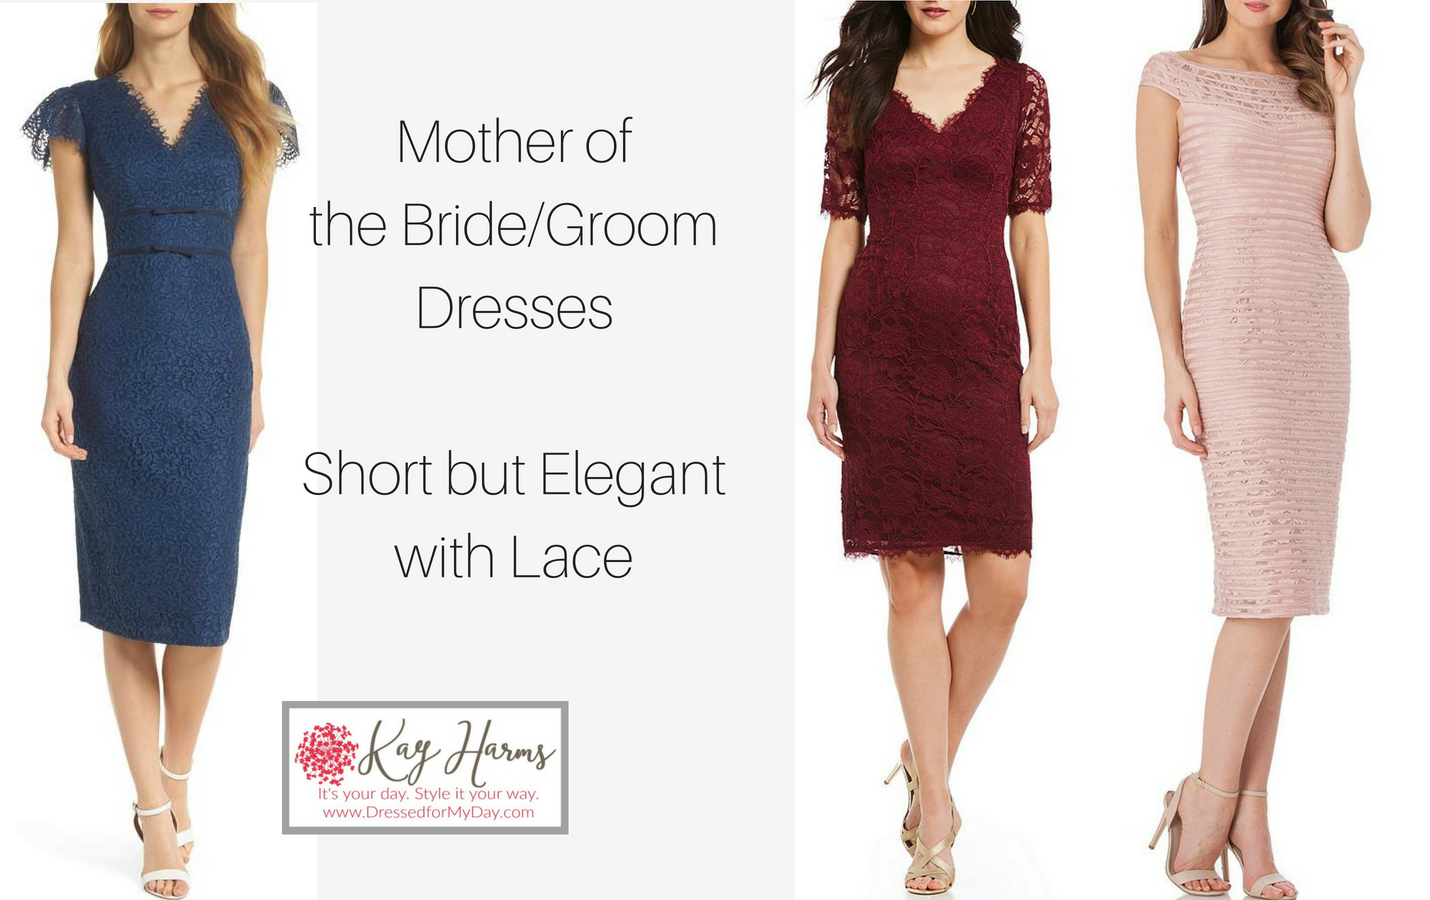 Mother of the Bride or Groom Dresses - Dressed for My Day